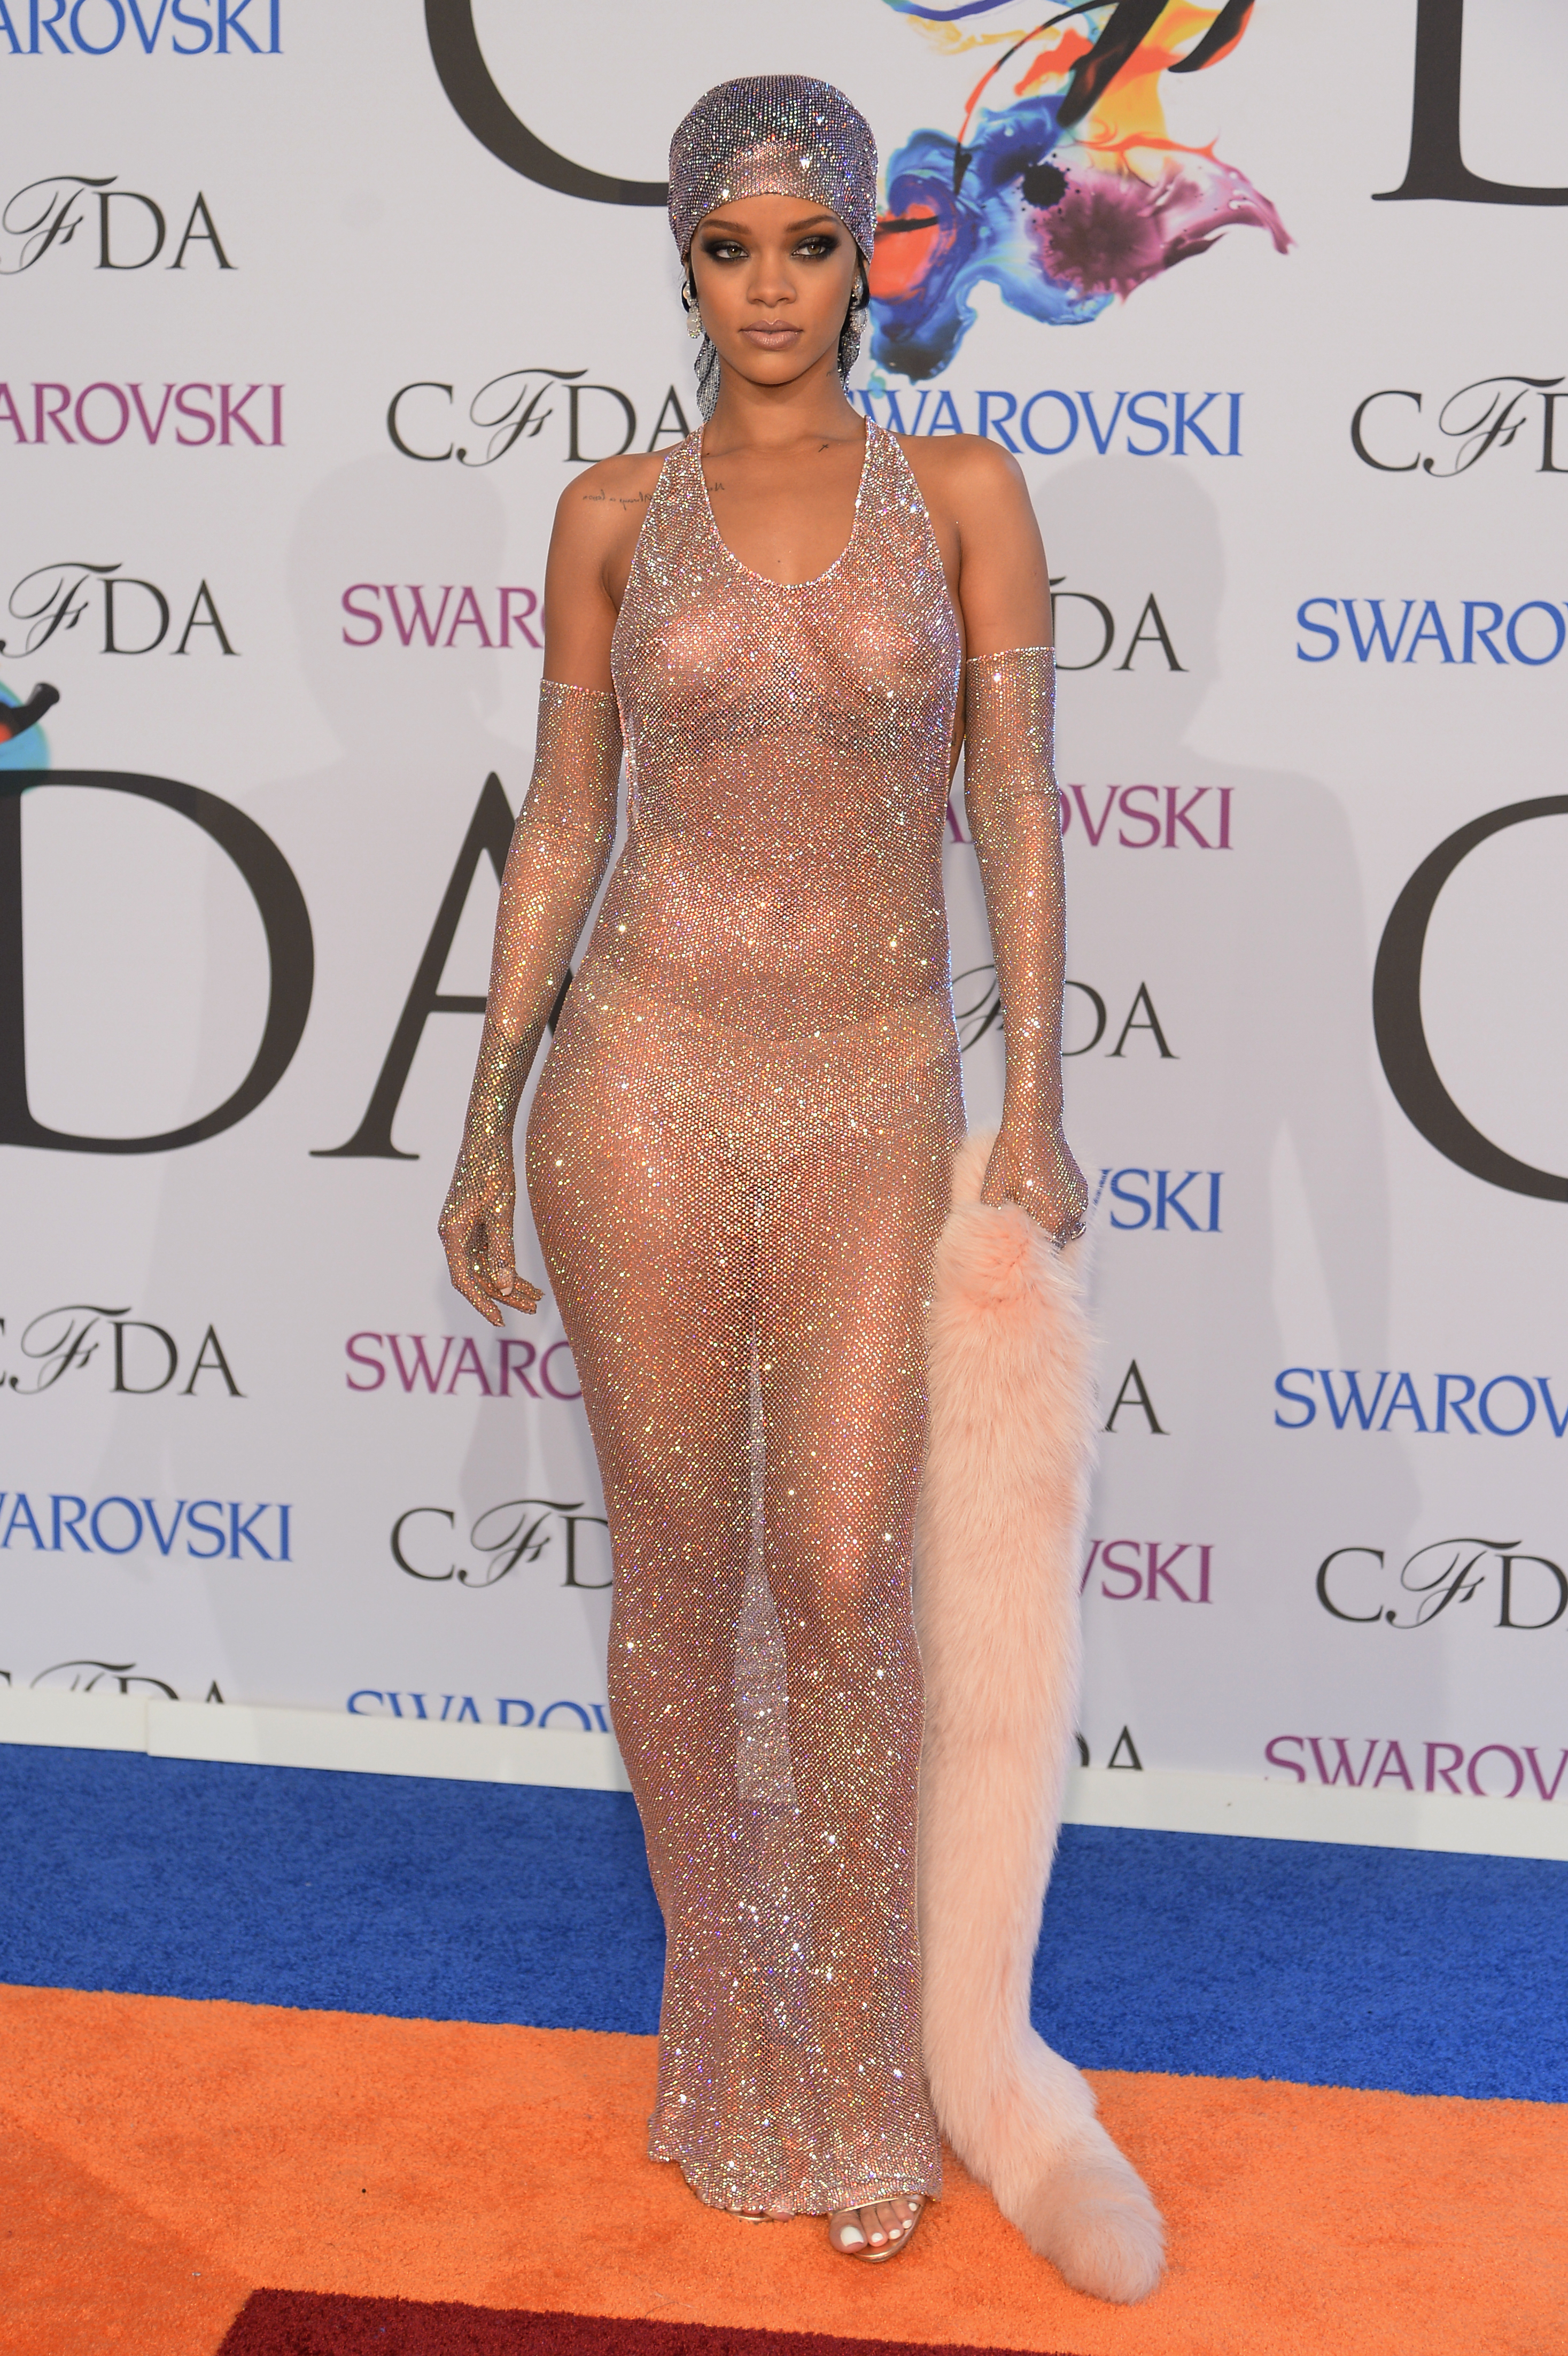 Near Naked Rihanna And Other Outlandish 2014 Cfda Fashion Awards Looks Gallery Dose Ca